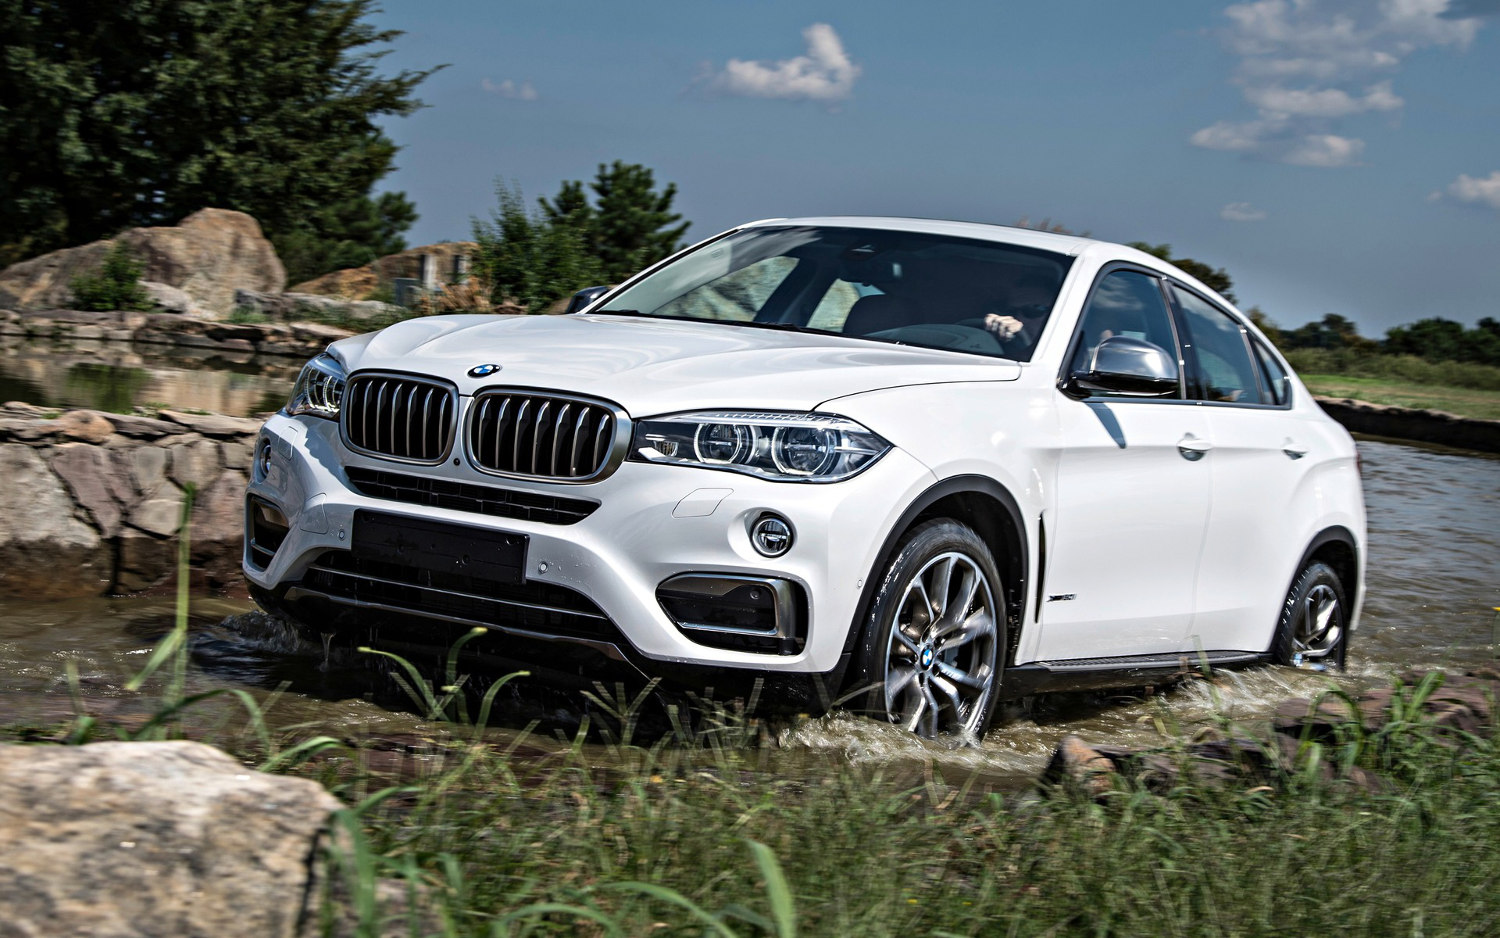 Comparison Bmw X6 Xdrive35i 2018 Vs Bmw X6 Xdrive50i